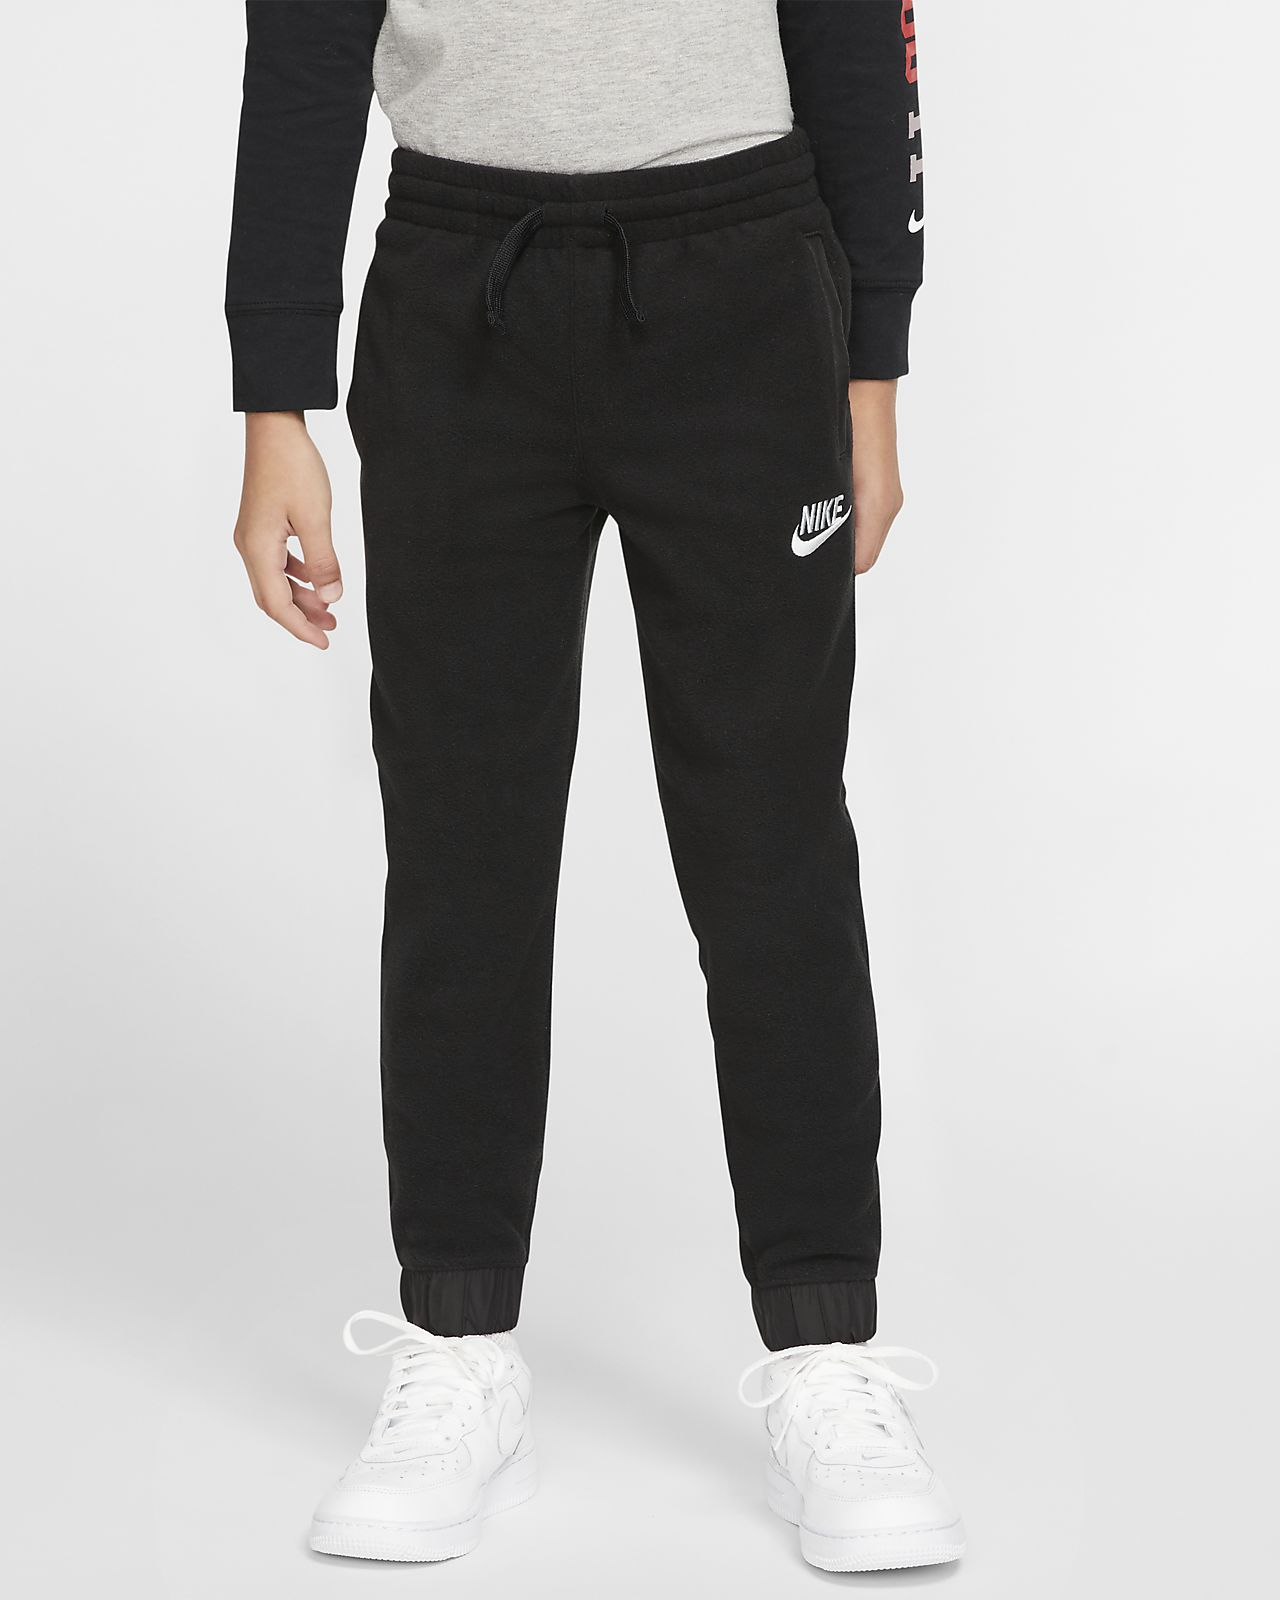 Nike Dri-FIT Little Kids' Winterized Joggers